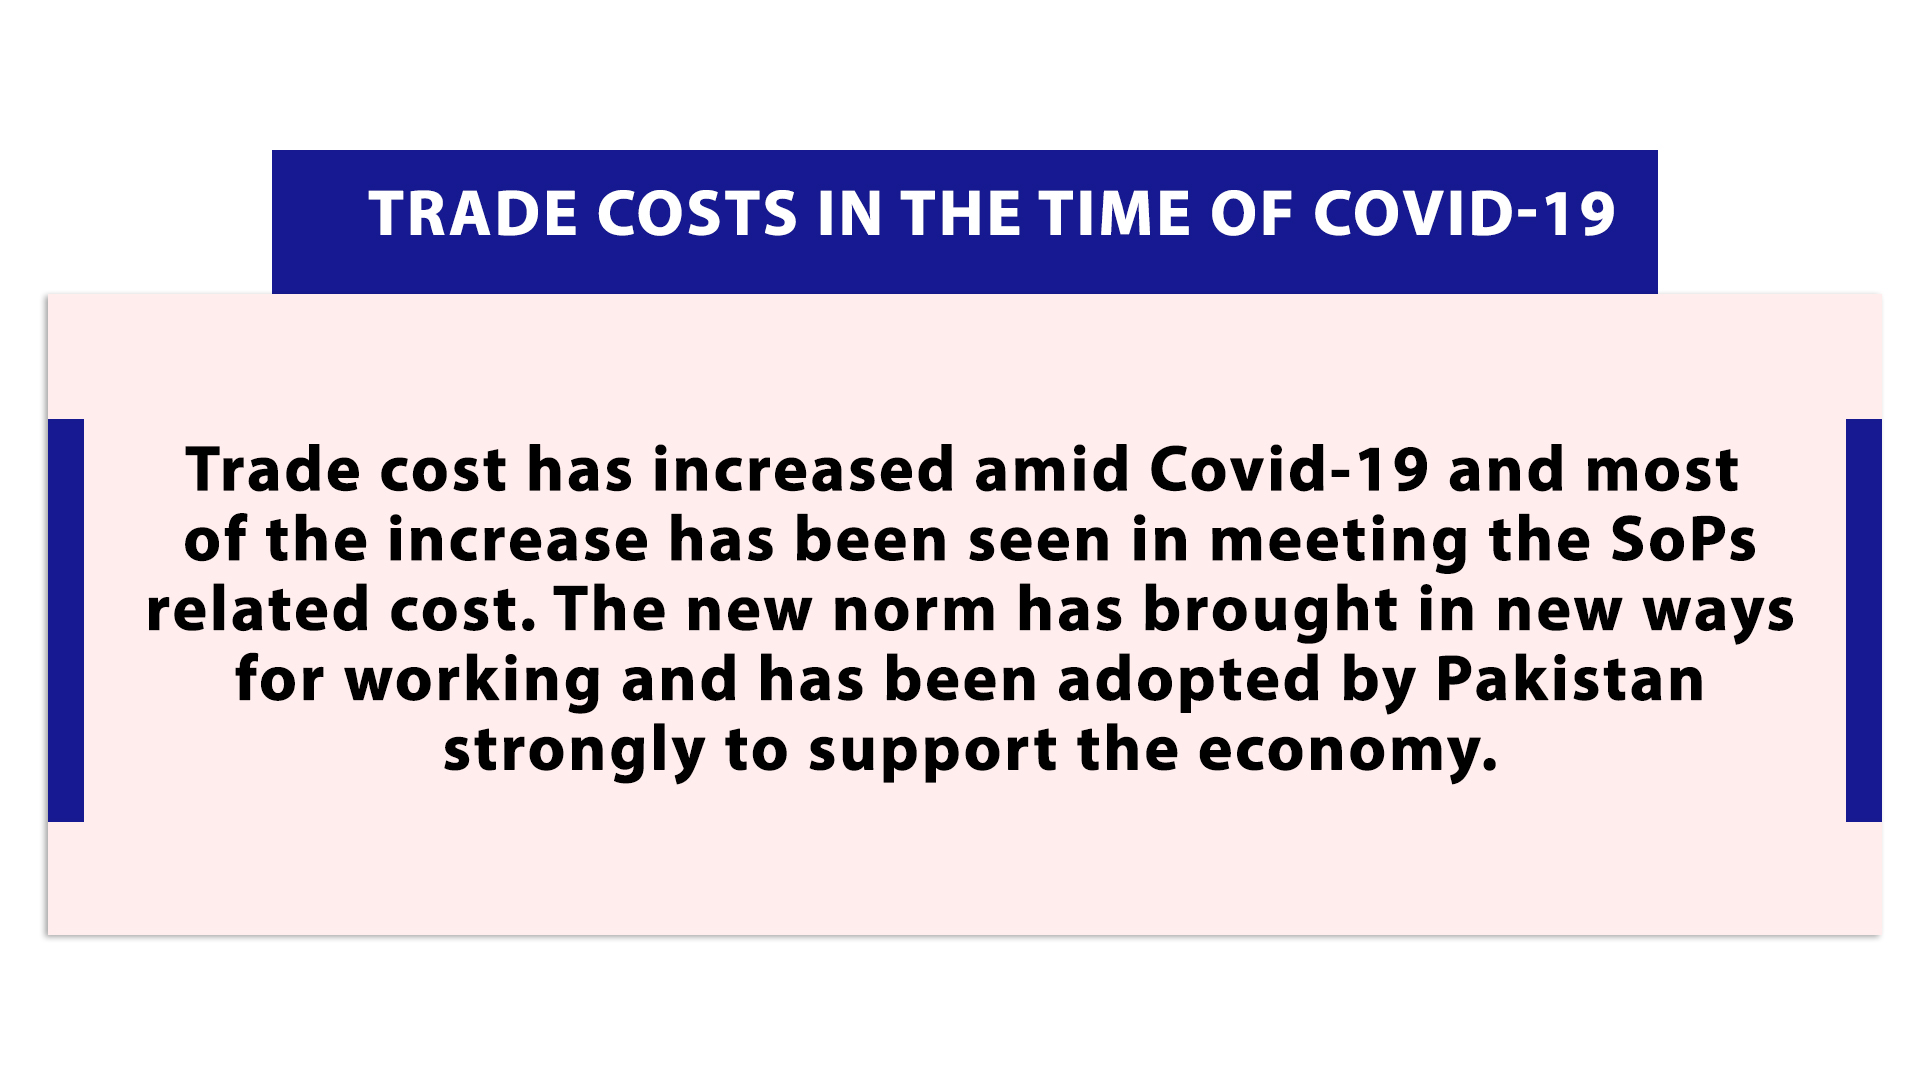 Trade Costs in the time of Covid-19